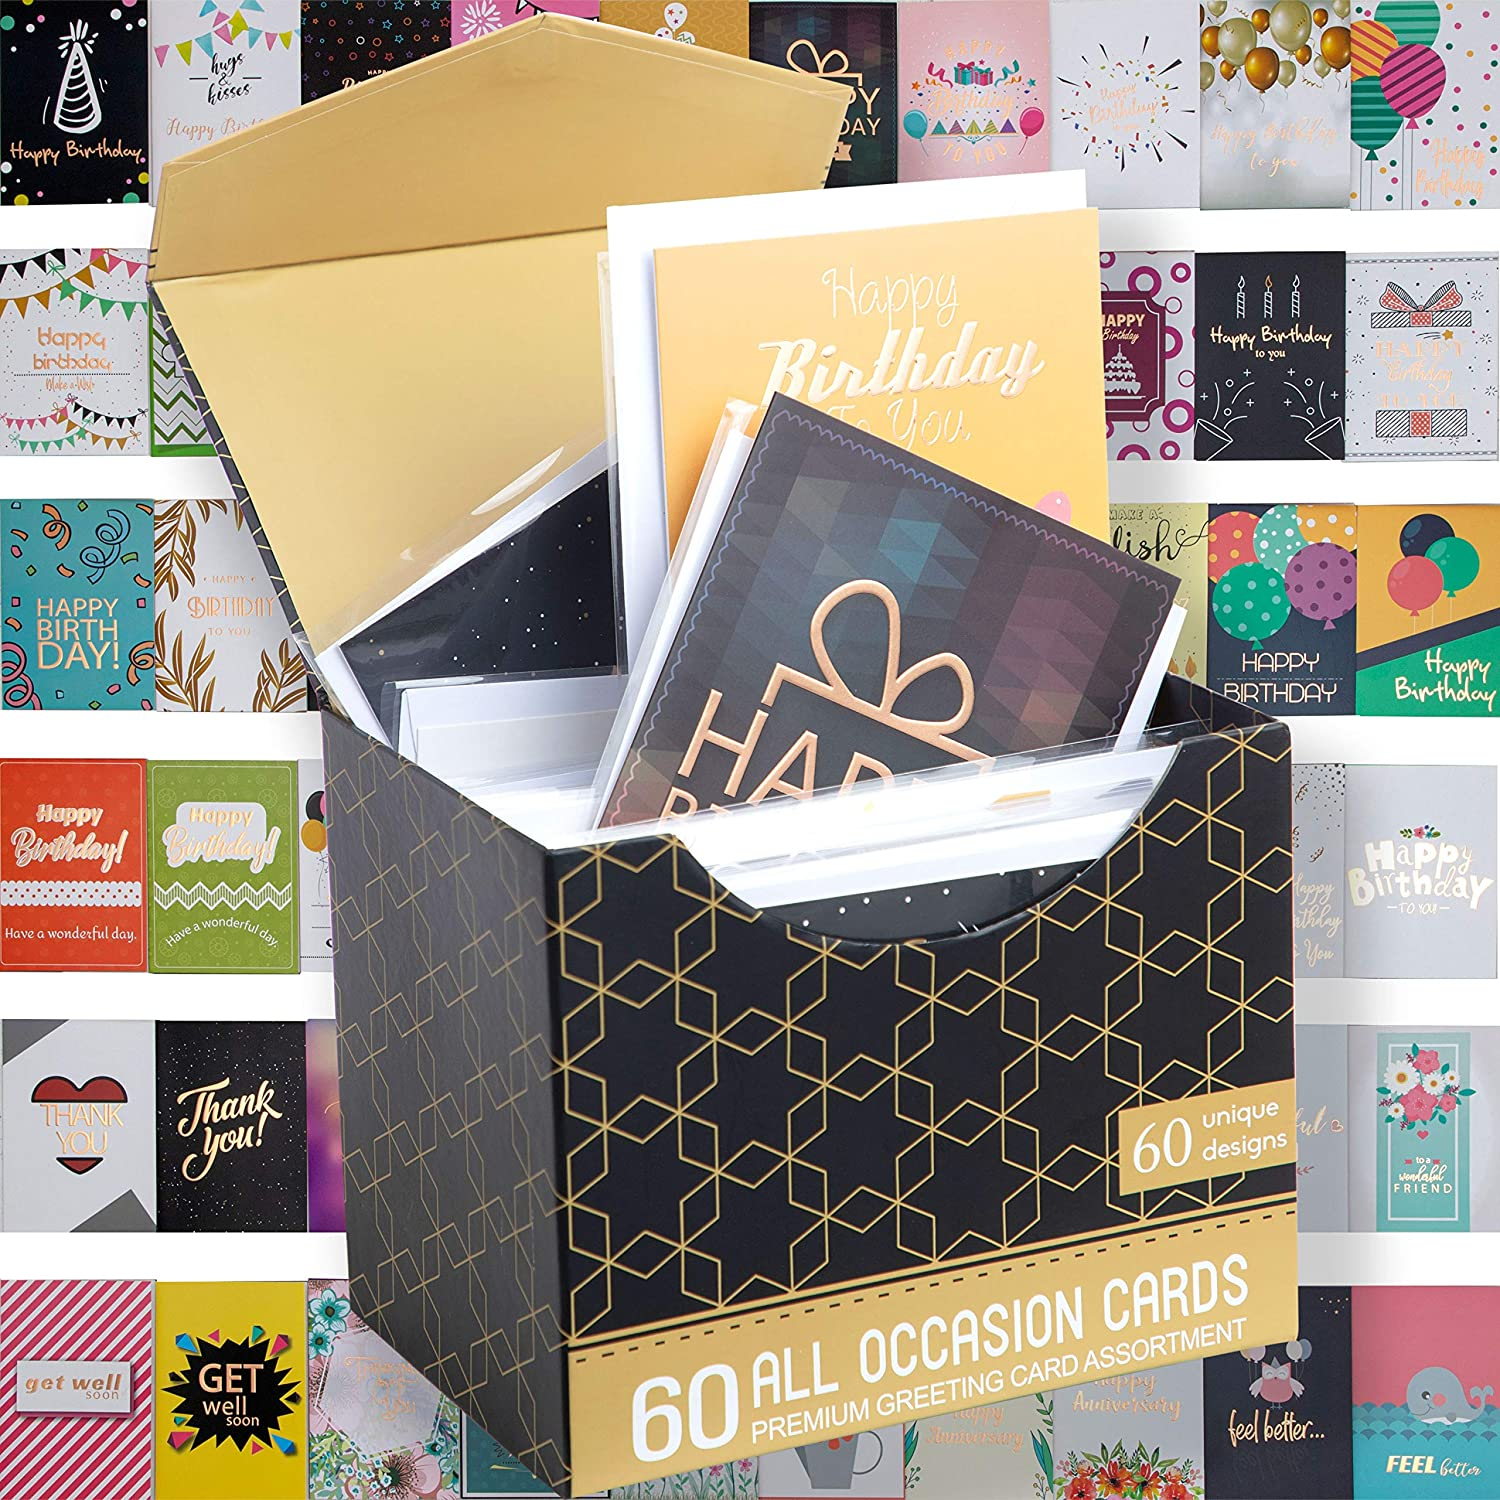 "60 ROSE GOLD FOILED Birthday Cards w/Assorted All Occasion Greeting Cards - ALL UNIQUE DESIGN, BIG 5""x7"", Thank You, Anniversary Cards, Simple Message Inside, Magnetic Box Variety Set w/Thick Envelope"